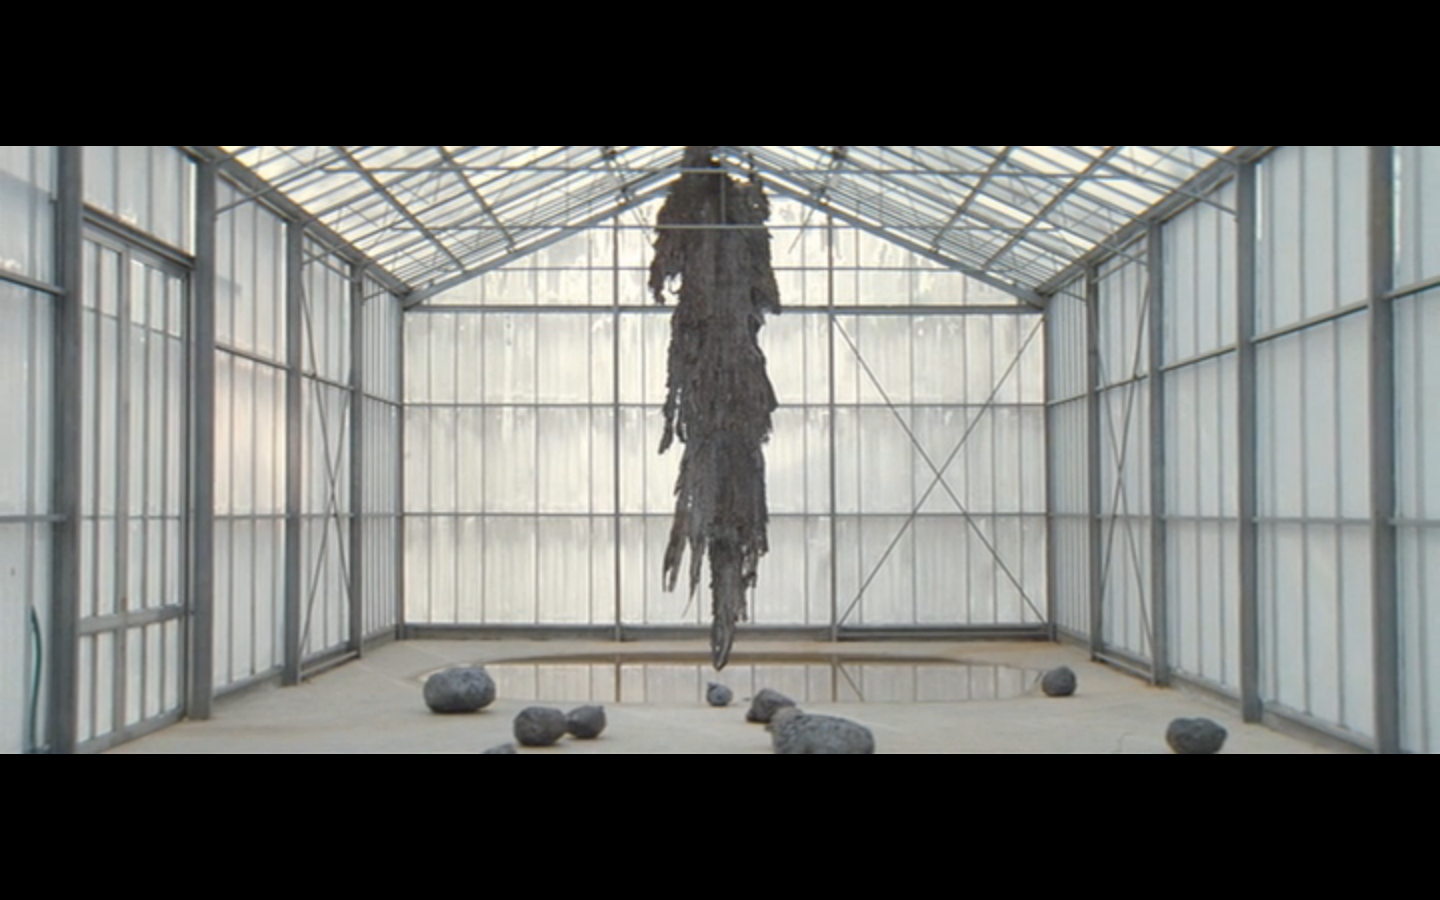 room with sculture hanging from ceiling and rocks on ground